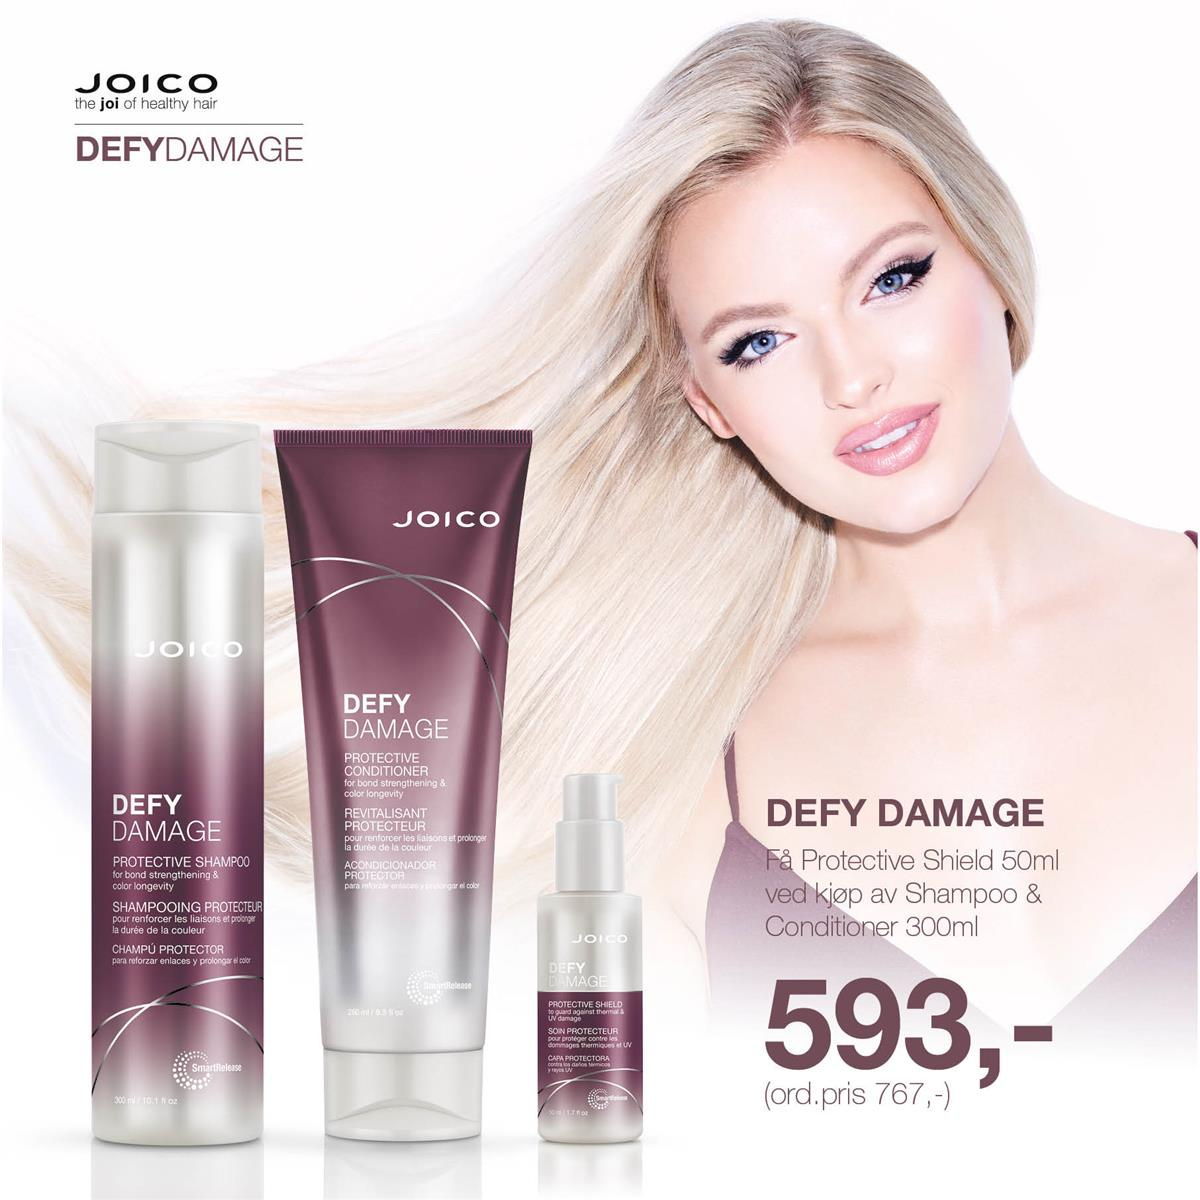 JOICO DEFY DAMAGE - KAMPANJE SEPTEMBER 2019